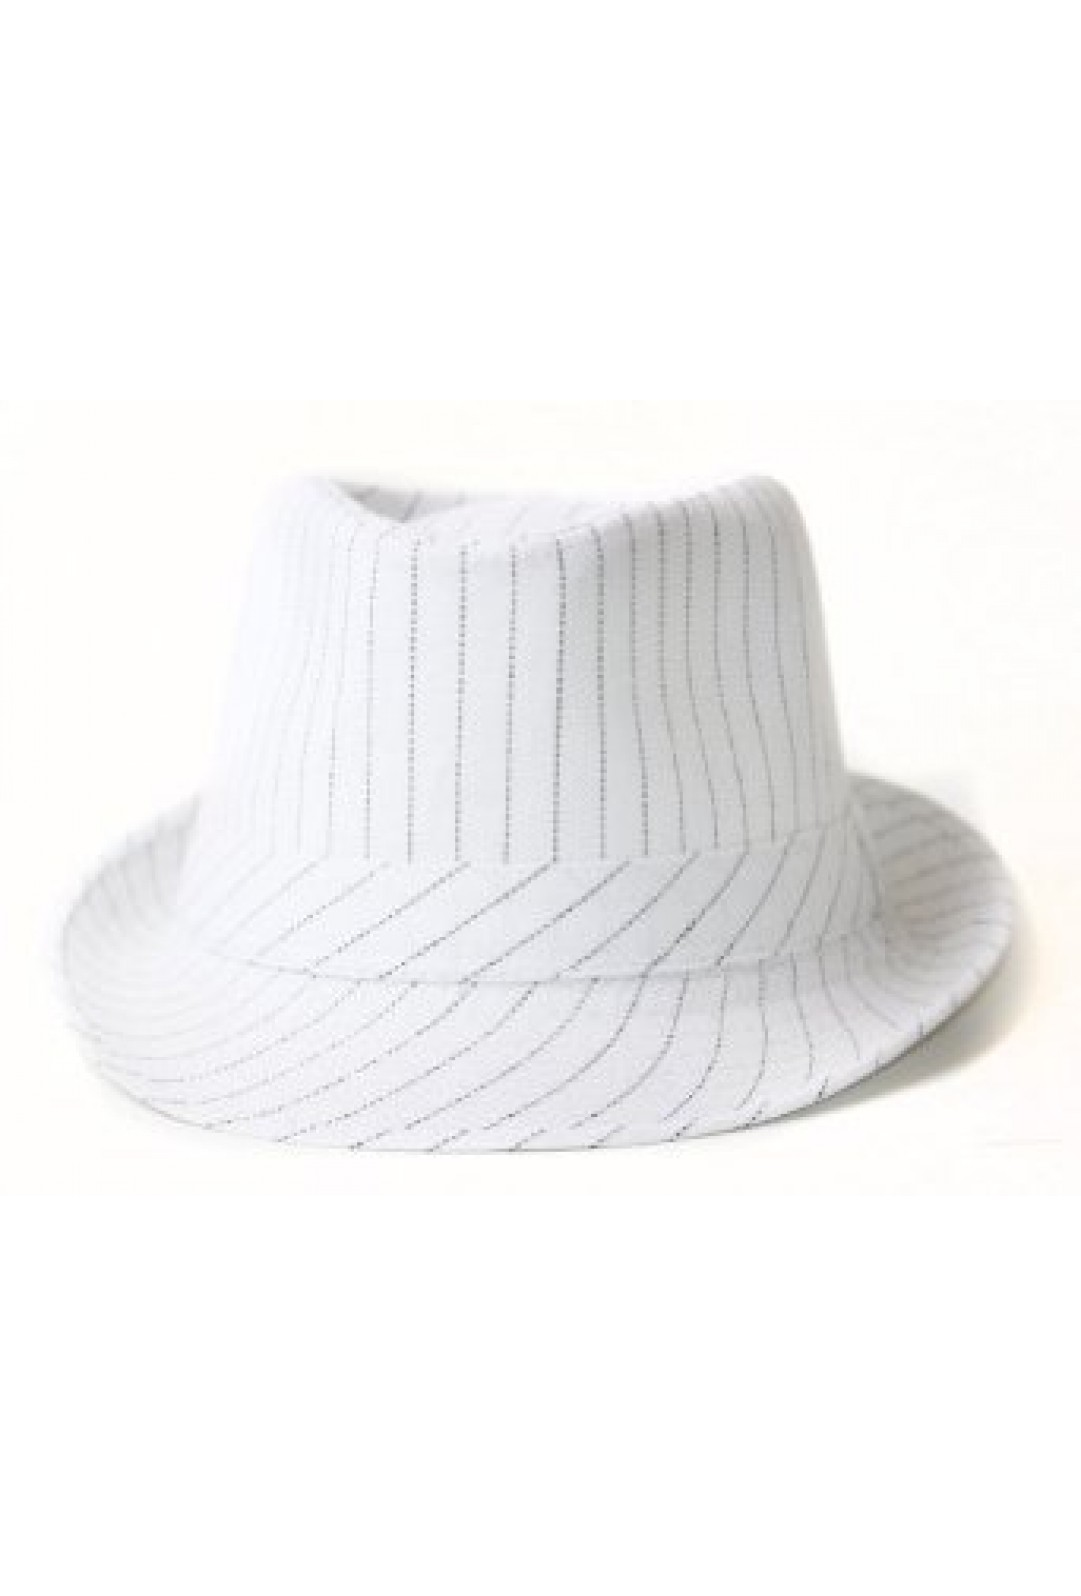 ADULT BLACK AND WHITE PINSTRIPED GANGSTER FEDORA HAT ONE SIZE FITS